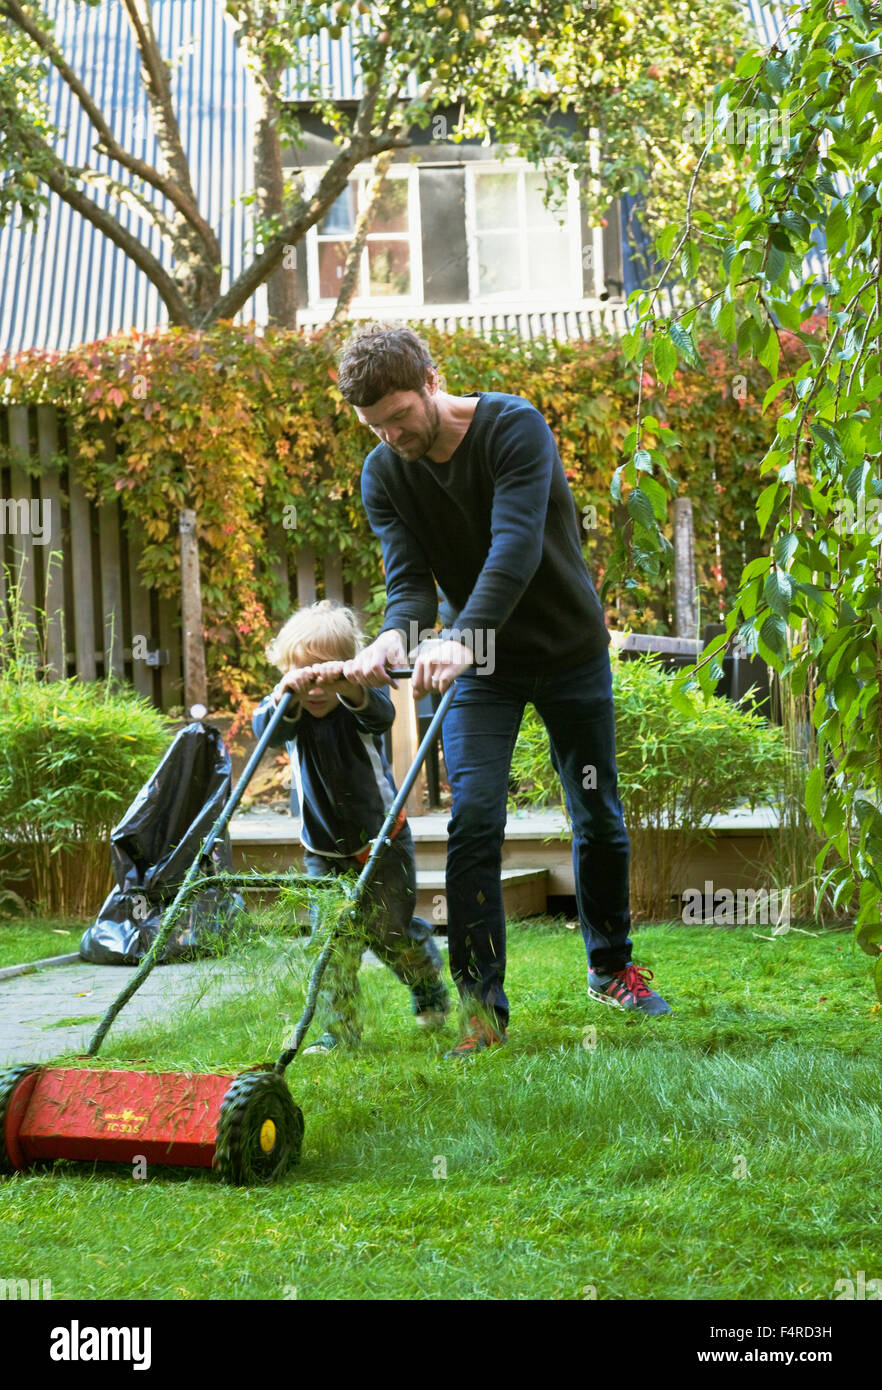 Sweden, Skane, Osterlen, Borrby, Father and son (4-5) mowing lawn in domestic garden - Stock Image